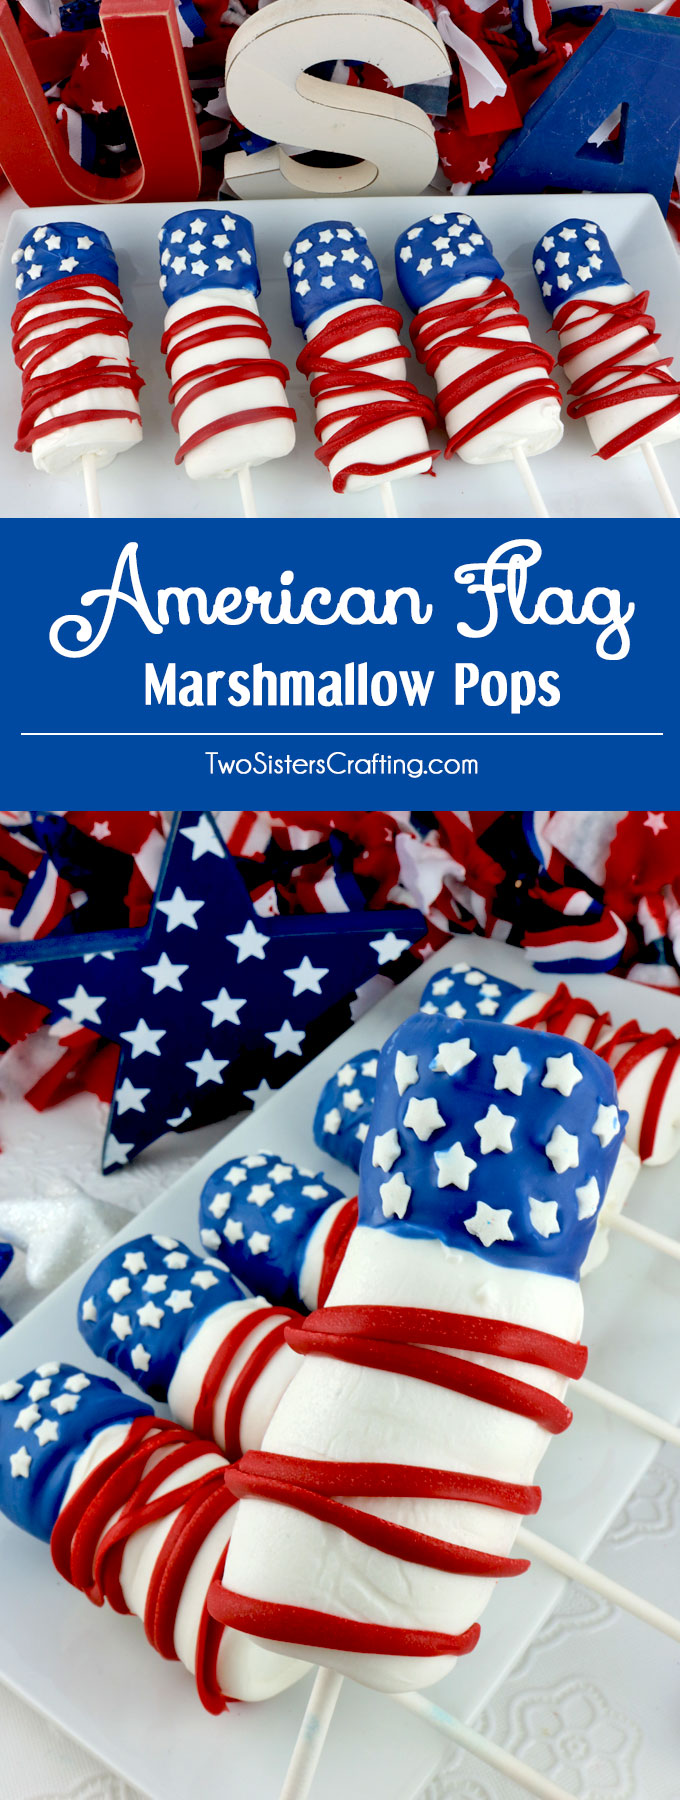 American Flag Marshmallow Pops are a unique and delicious 4th of July treats. So easy to make and you won't believe how delicious this Red White and Blue is to eat. They would be a fun Fourth of July dessert for a 4th of July Party, a Memorial Day BBQ or even an Olympics viewing party. Pin this great 4th of July dessert for later and follow us for more fun 4th of July Food ideas.